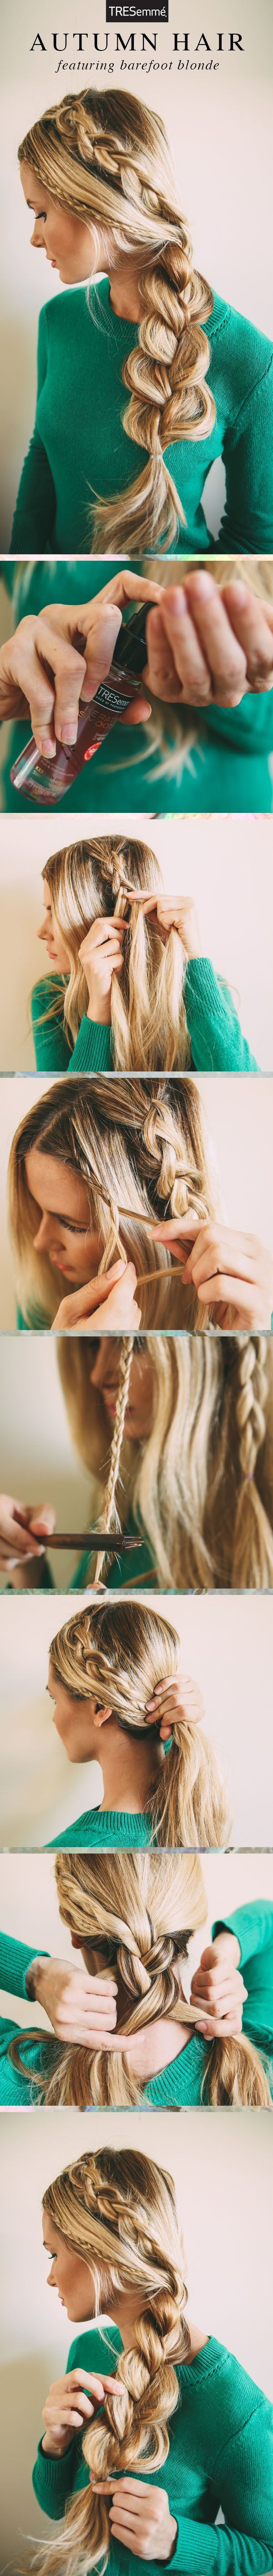 Connoisseur of braids, @amberlfillerup shows us a triple-braid autumn look (because two braids just aren't enough).: